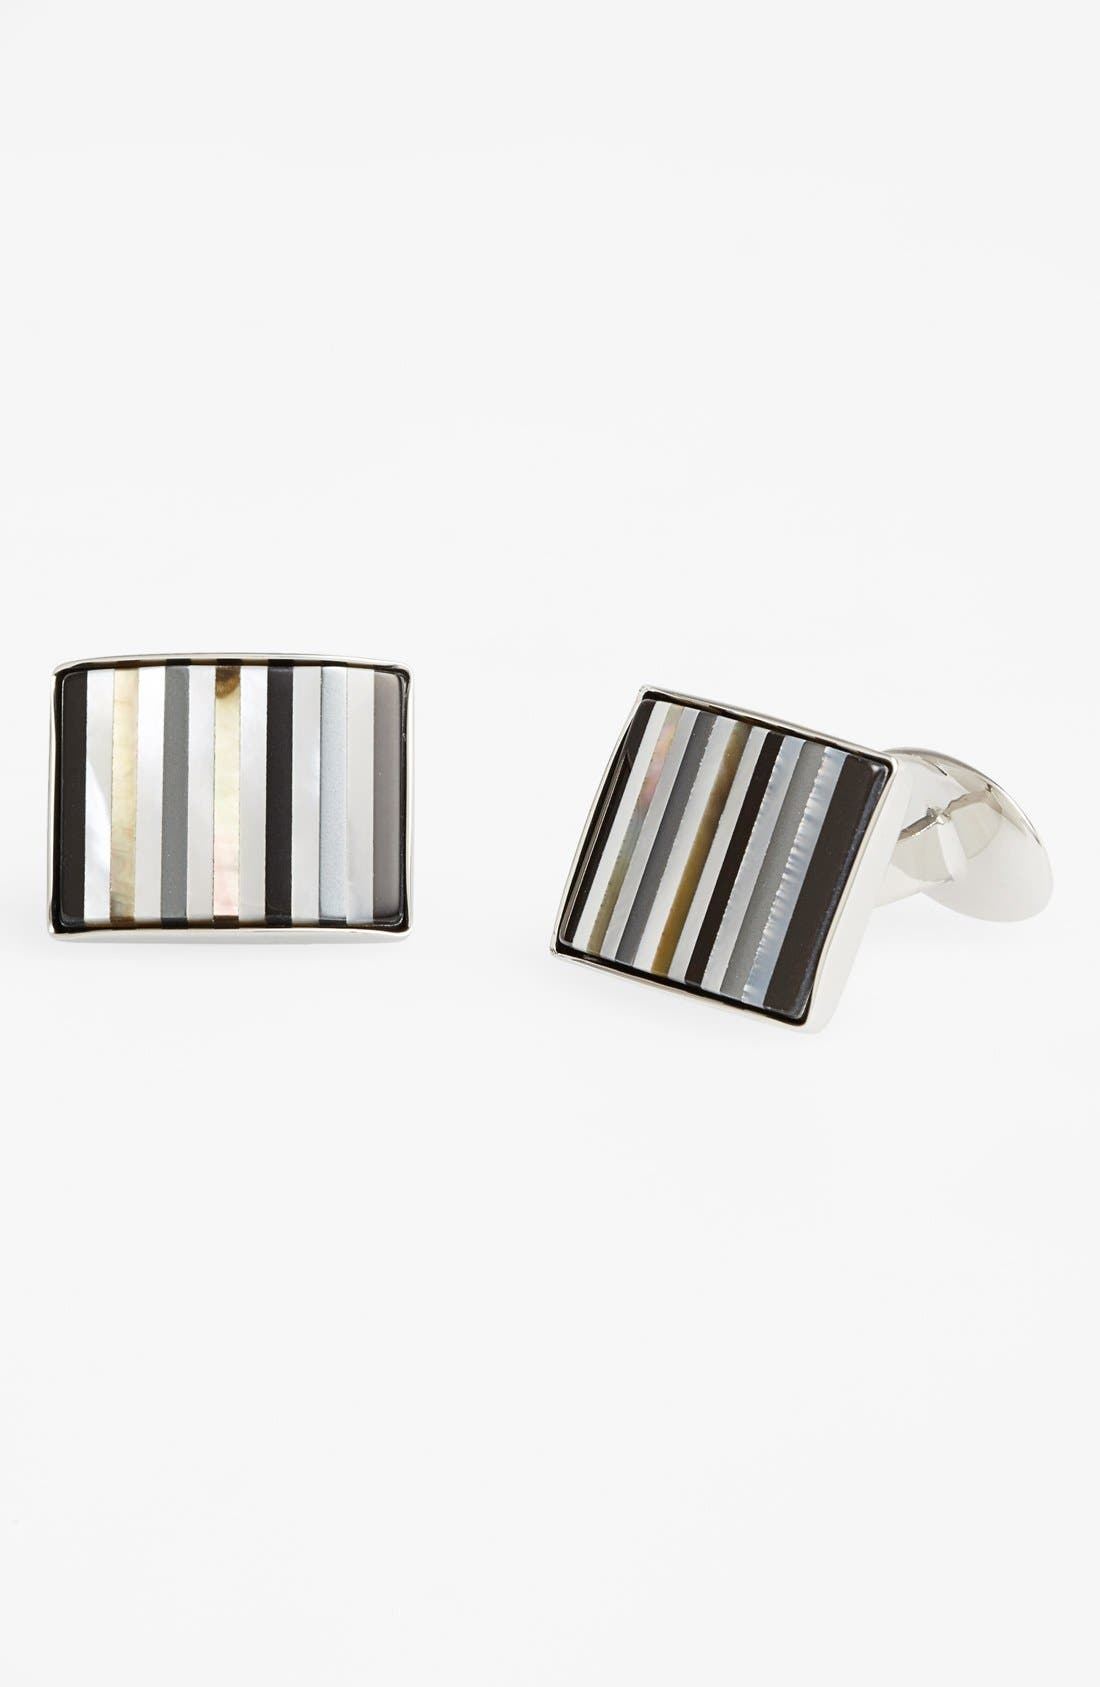 Semiprecious Cuff Links,                         Main,                         color, Sterling Silver/ Multicolored